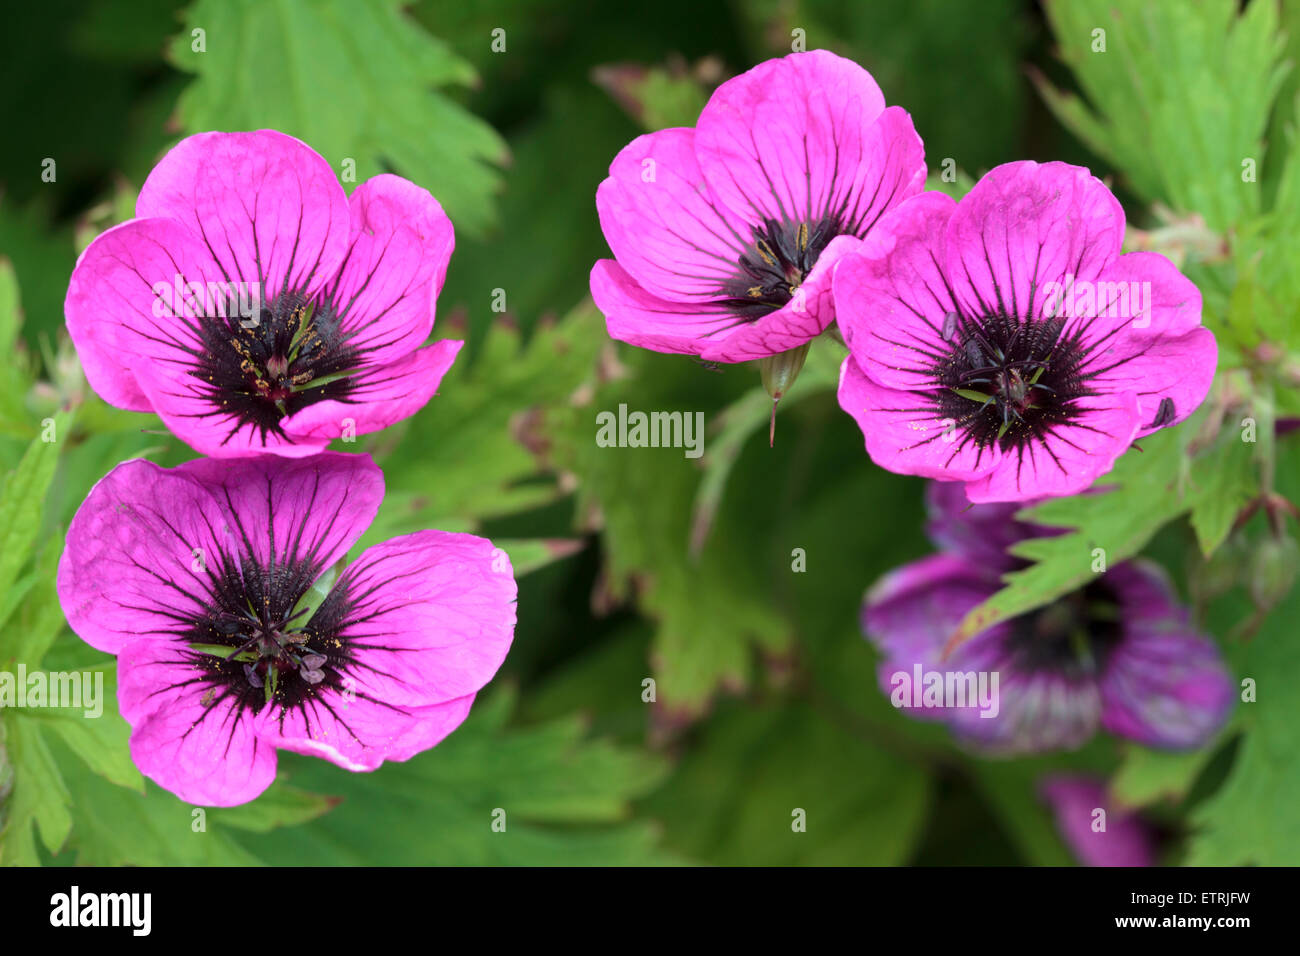 Dark eyed magenta flowers of the spreading, hardy, Geranium psilostemon - Stock Image